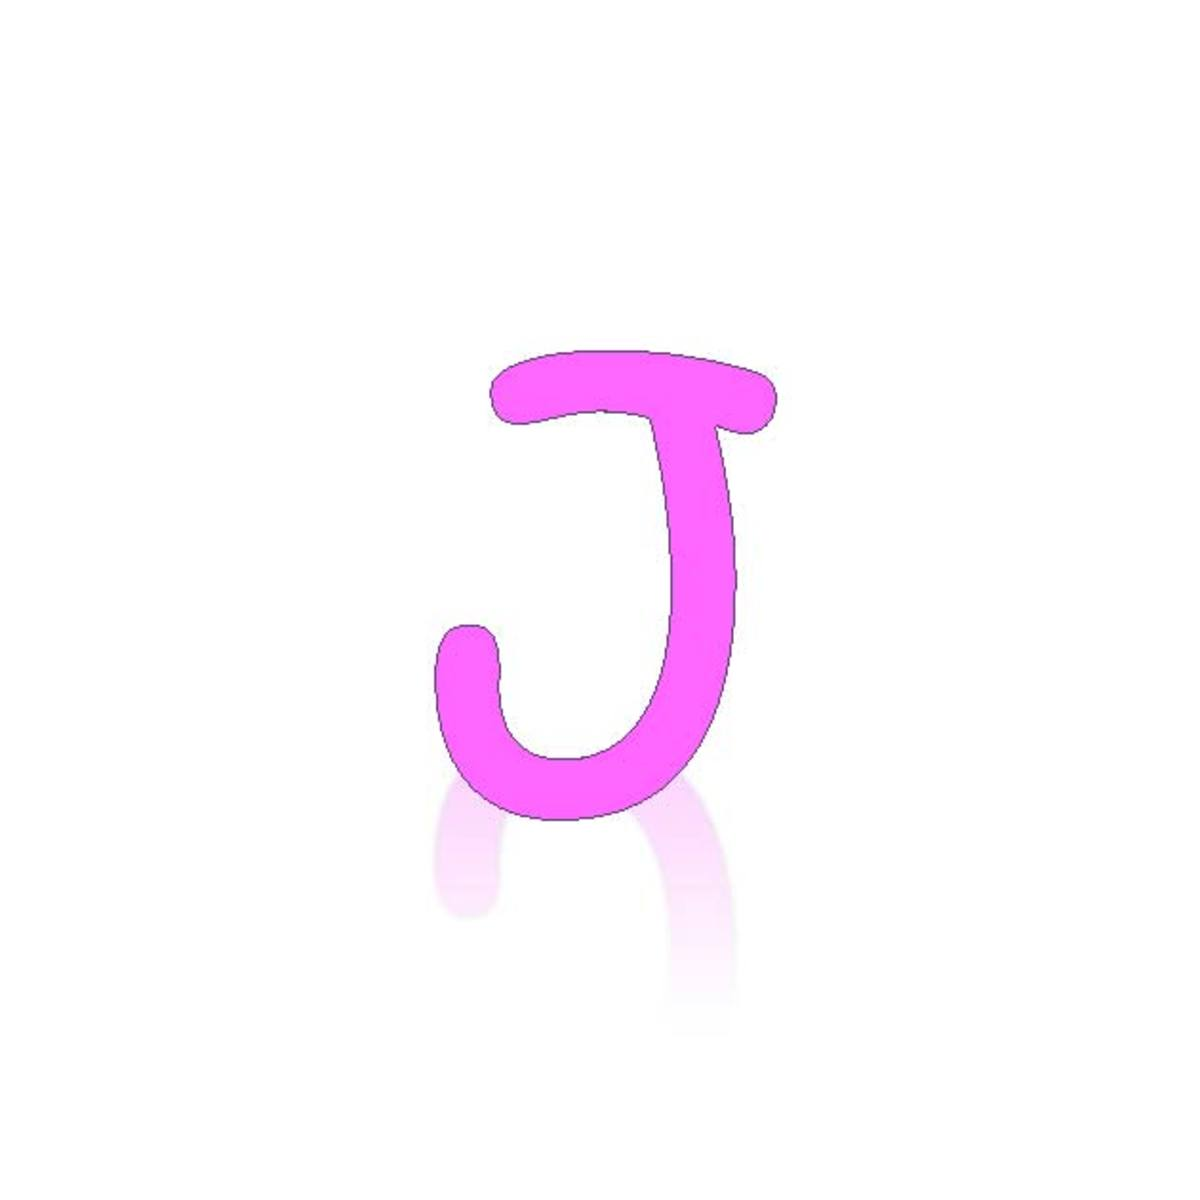 Acrostic Name Poems For Girls Names Starting With J